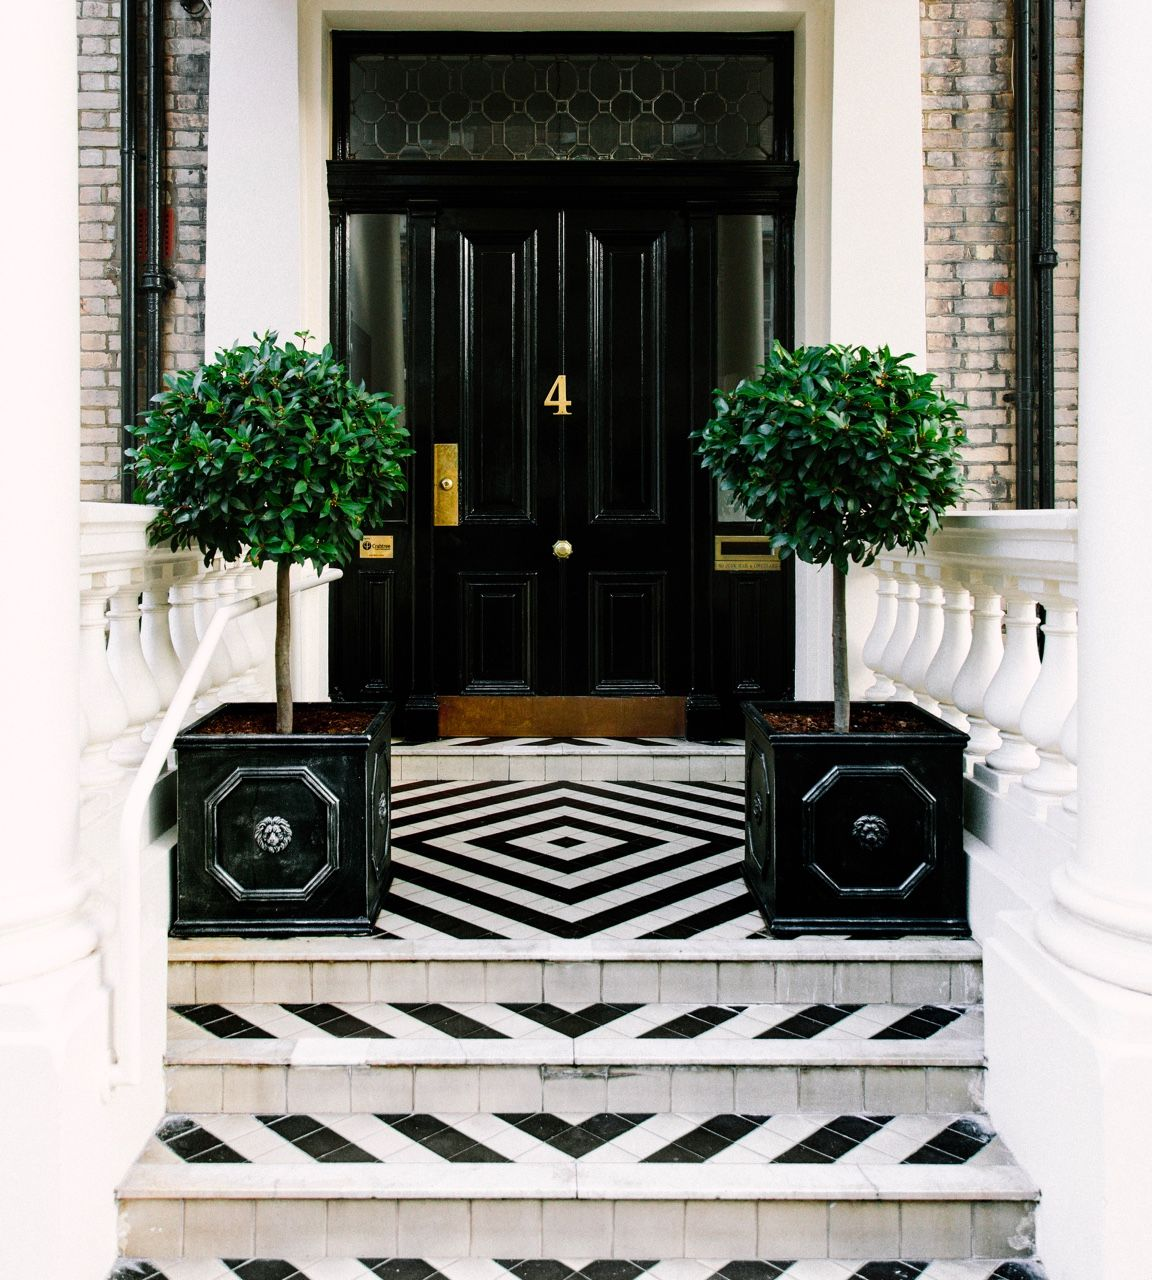 Seangaleburke South Kensington London Uk Seangaleburke White Porch Black Front Doors House Exterior